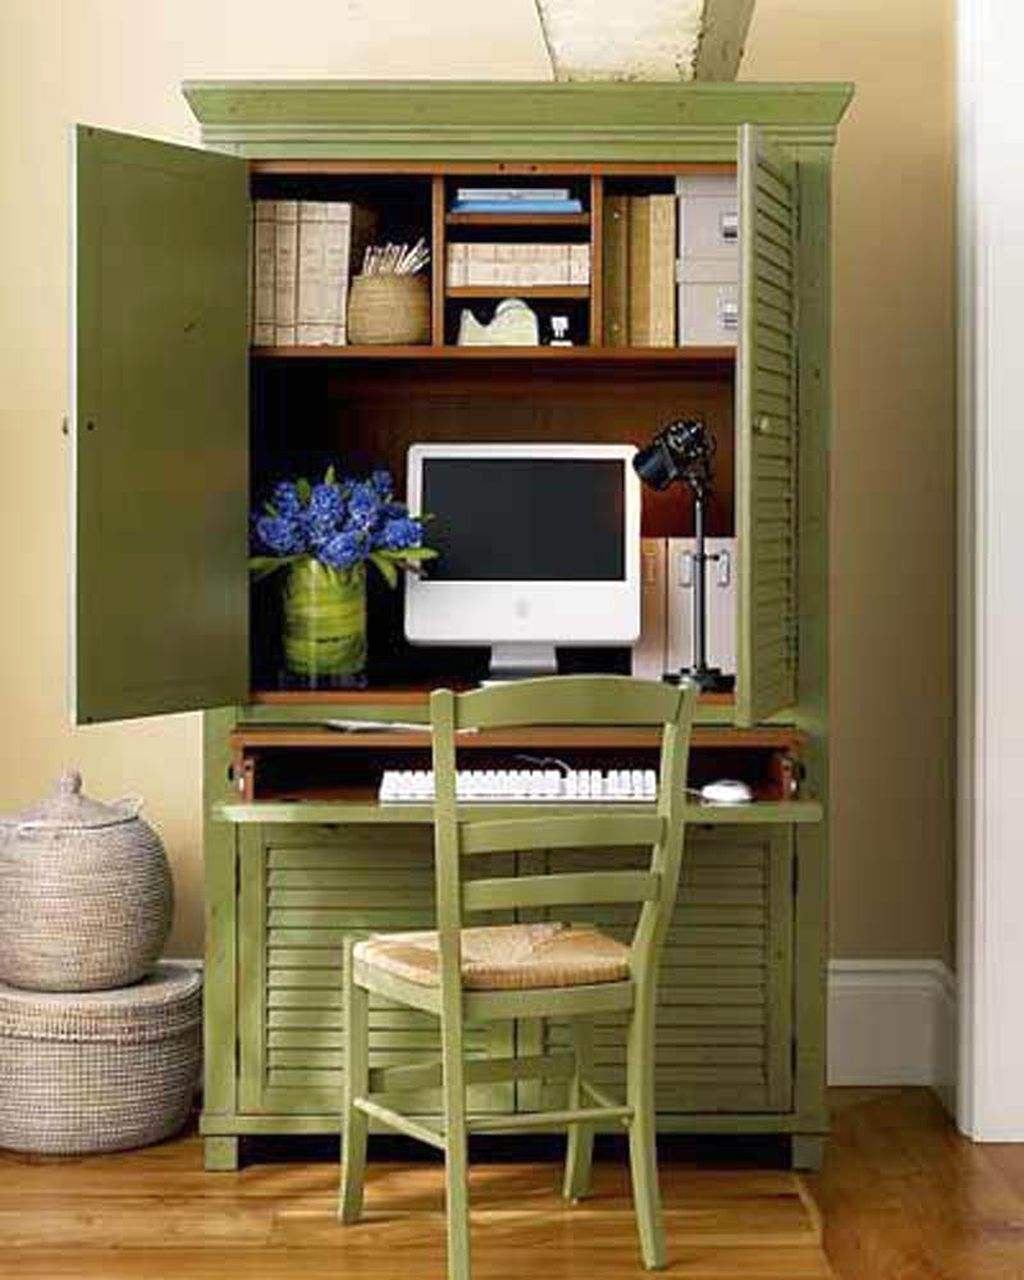 Green cupboard home office design ideas for small spaces for Home office designs ideas